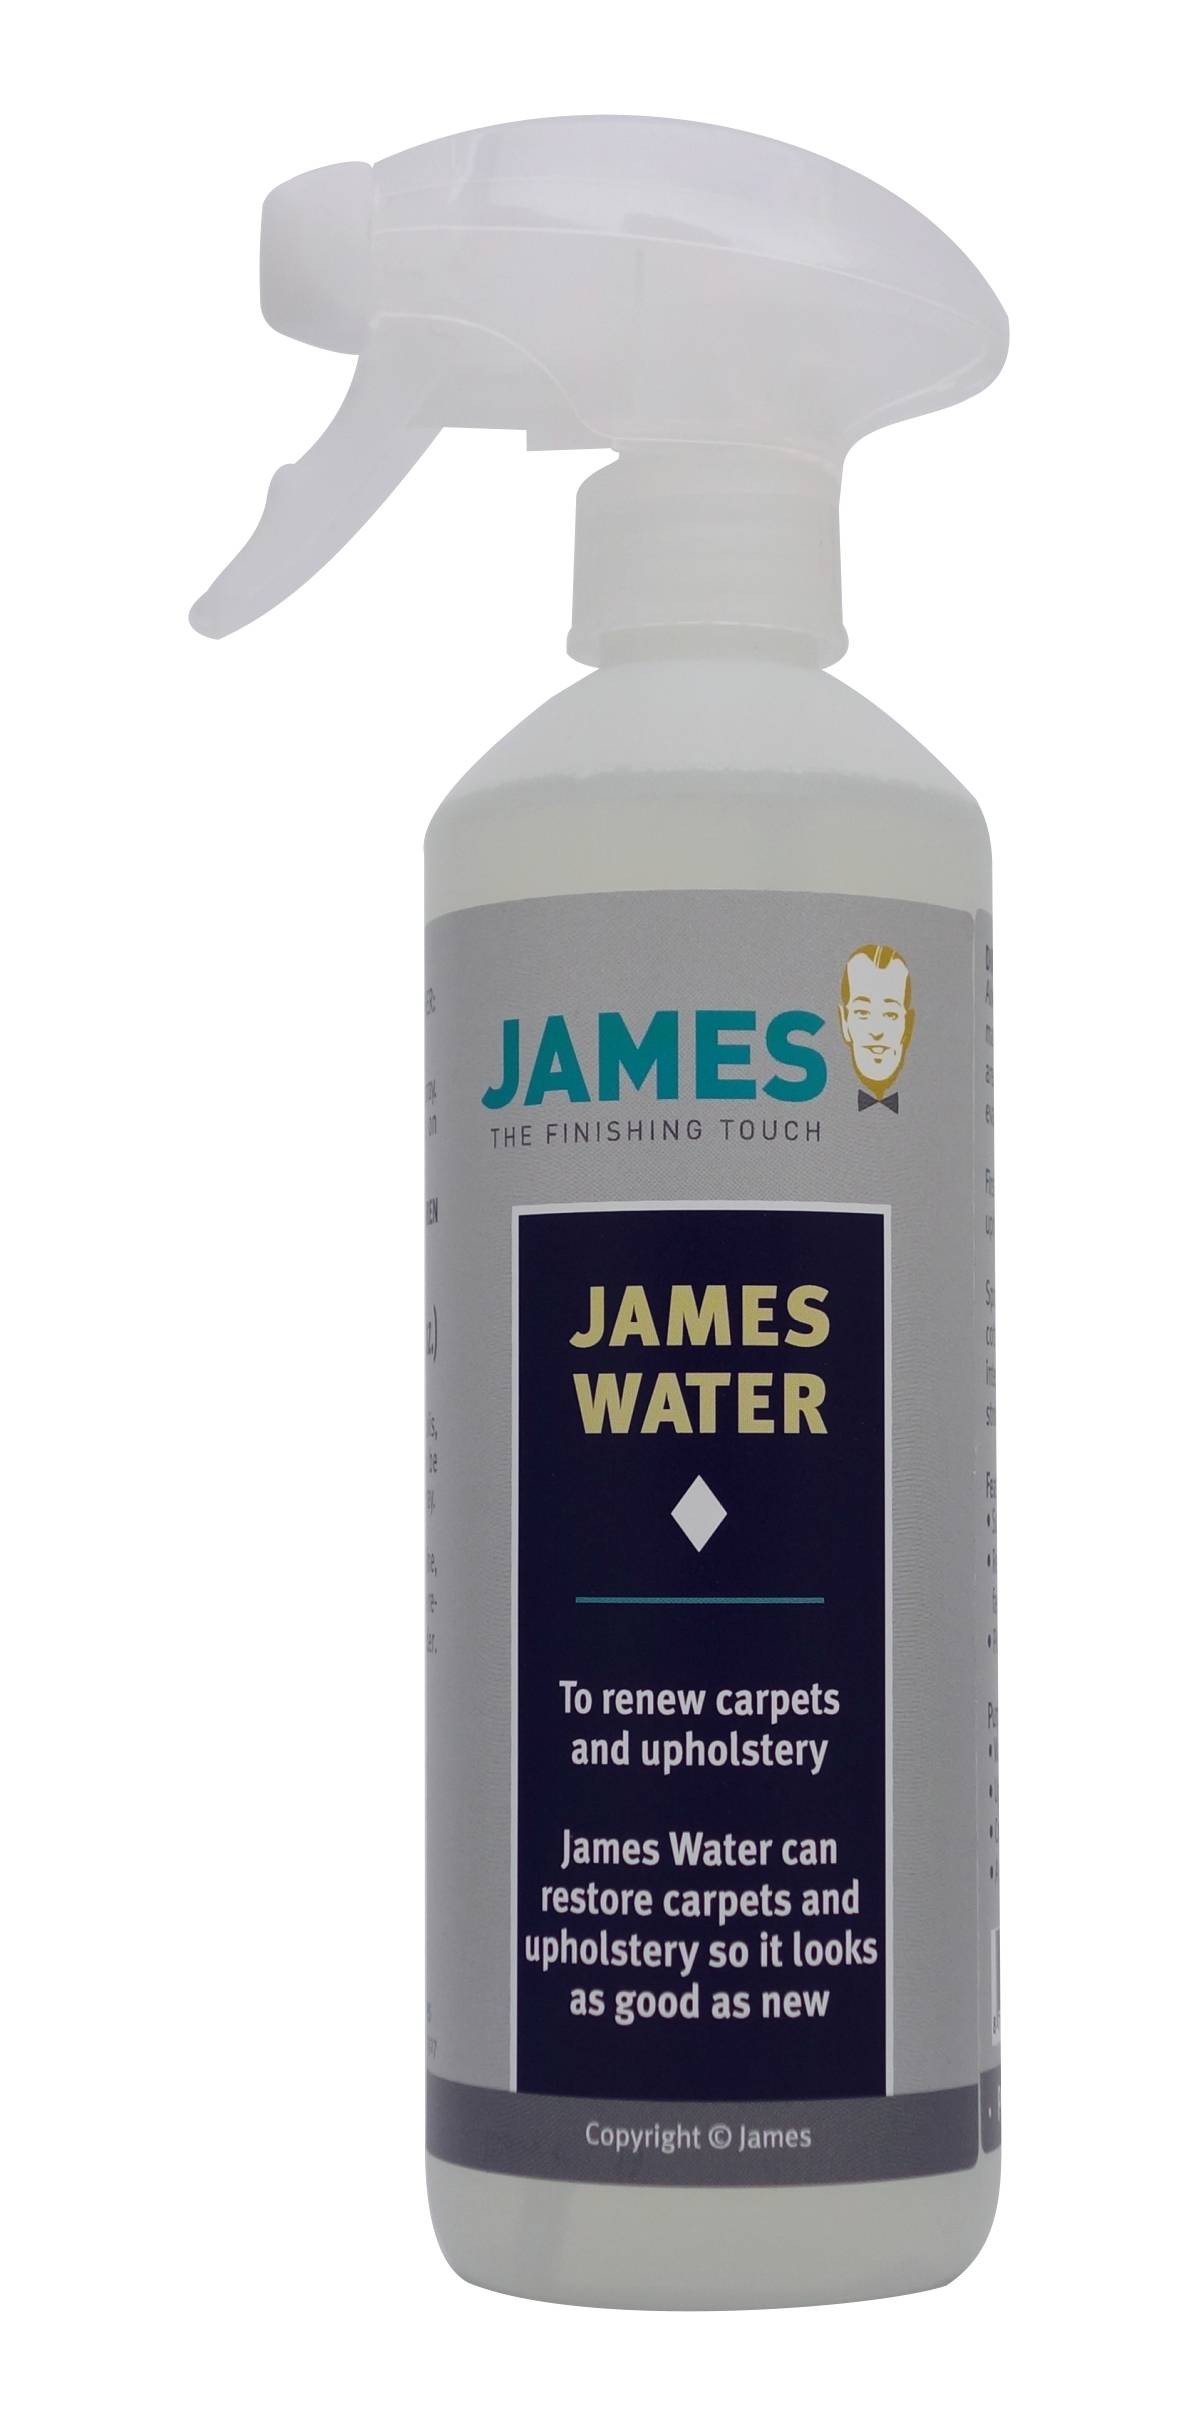 James Cleaner - James Water - secret component in the James Starter Set - your Stain First Aid Kit